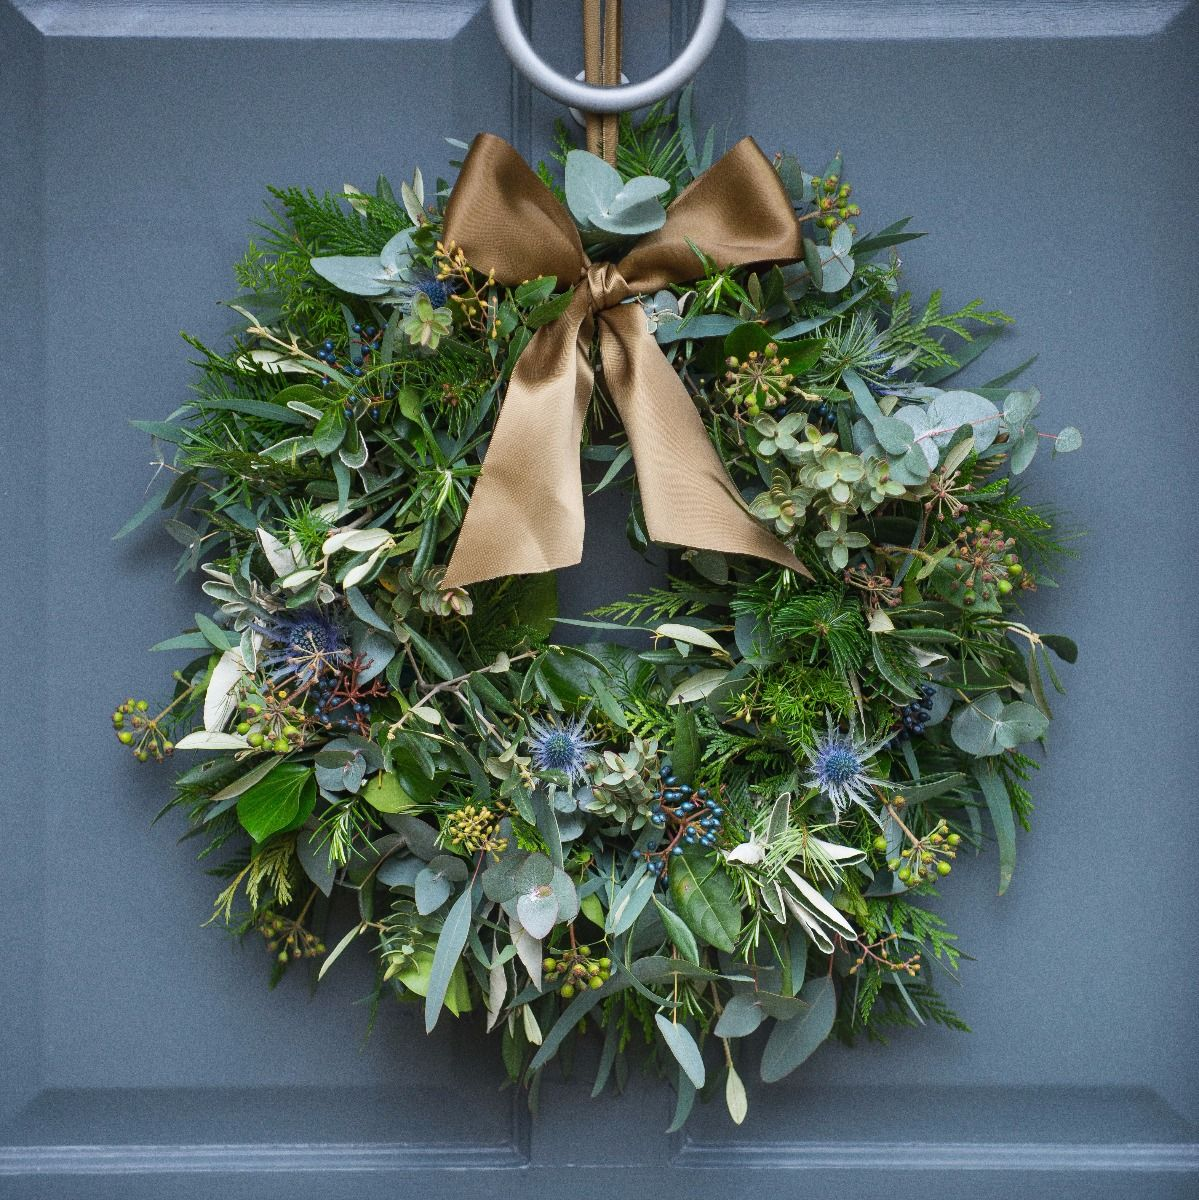 oval wreaths design round door flowers ideas year wreath pink floral decorations fresh of idea grapevine gallery